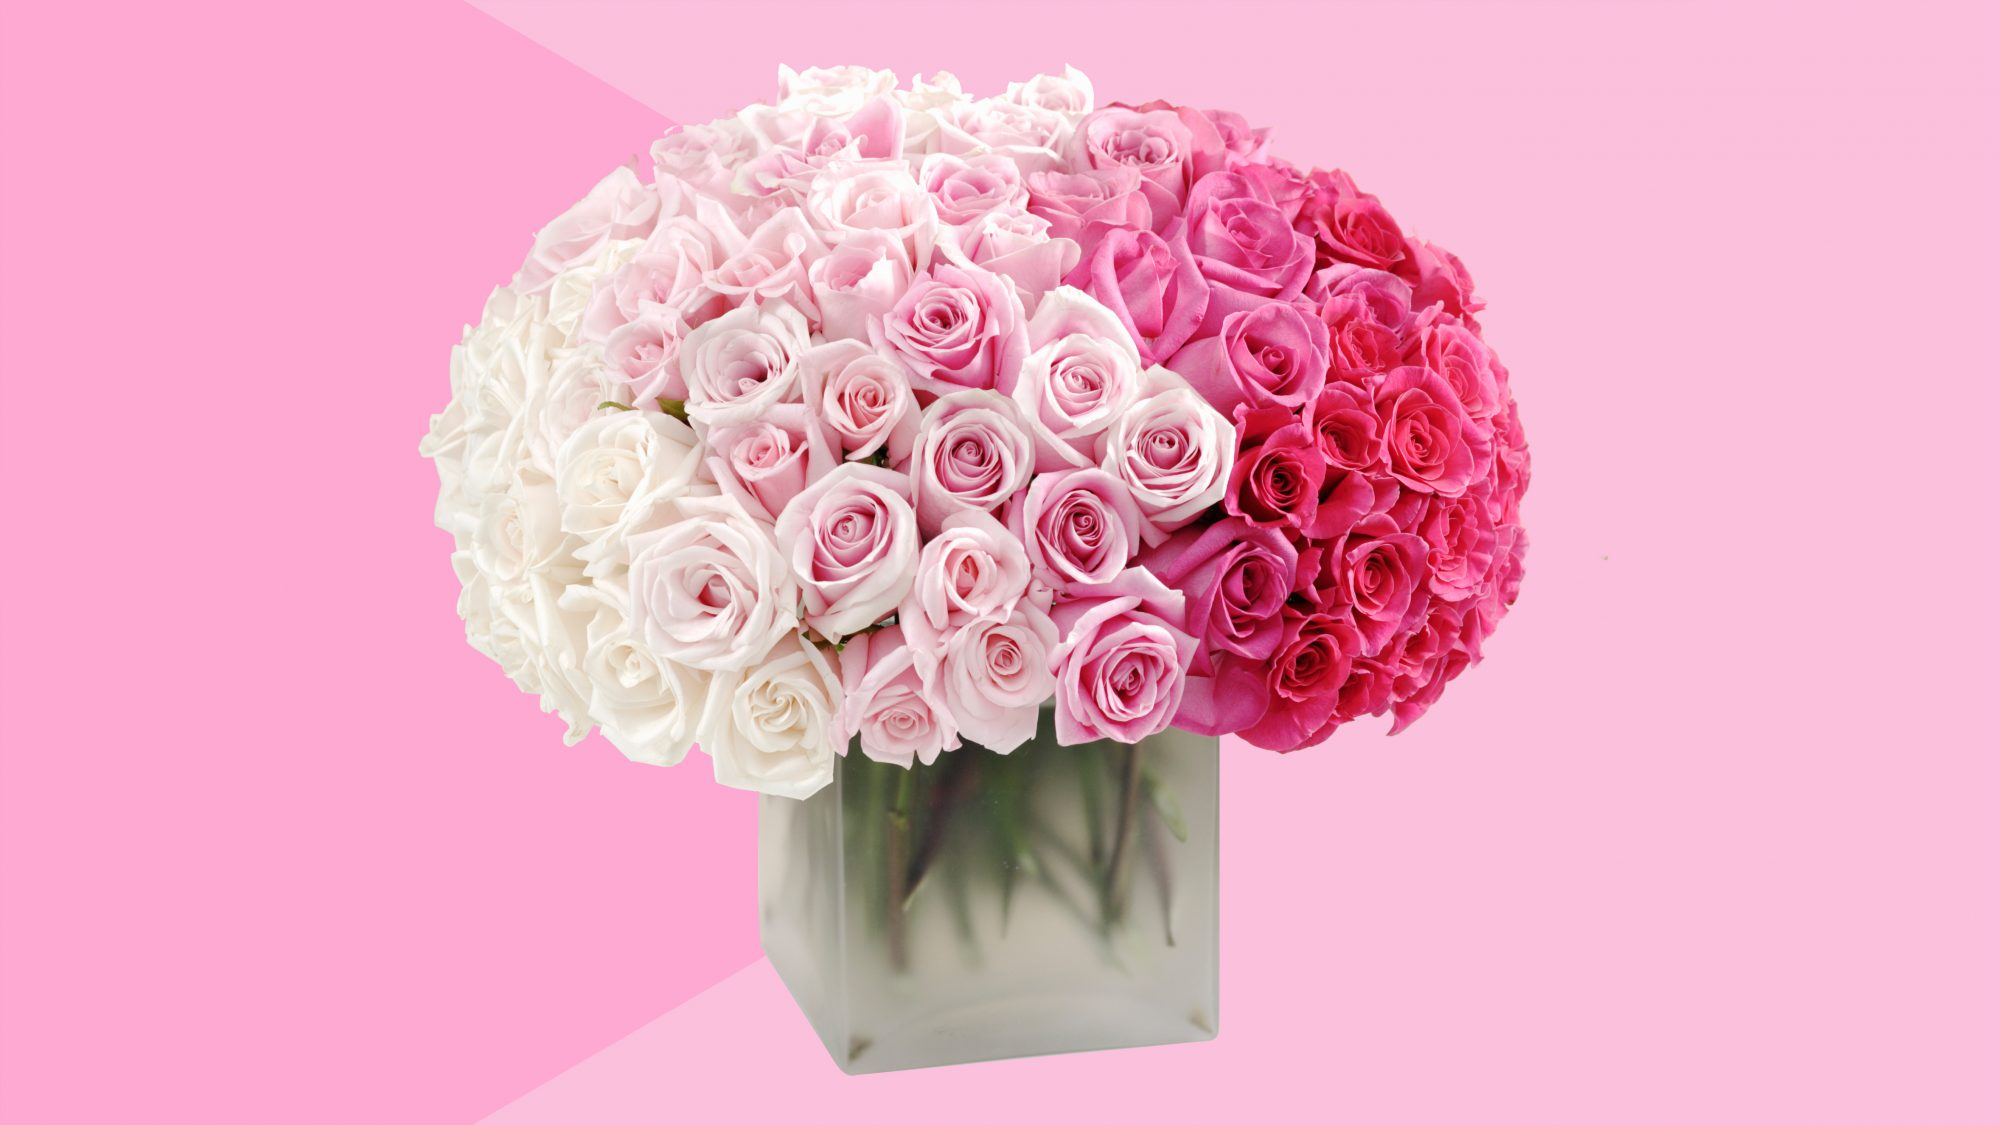 best-flower-delivery-service: pink roses in vase